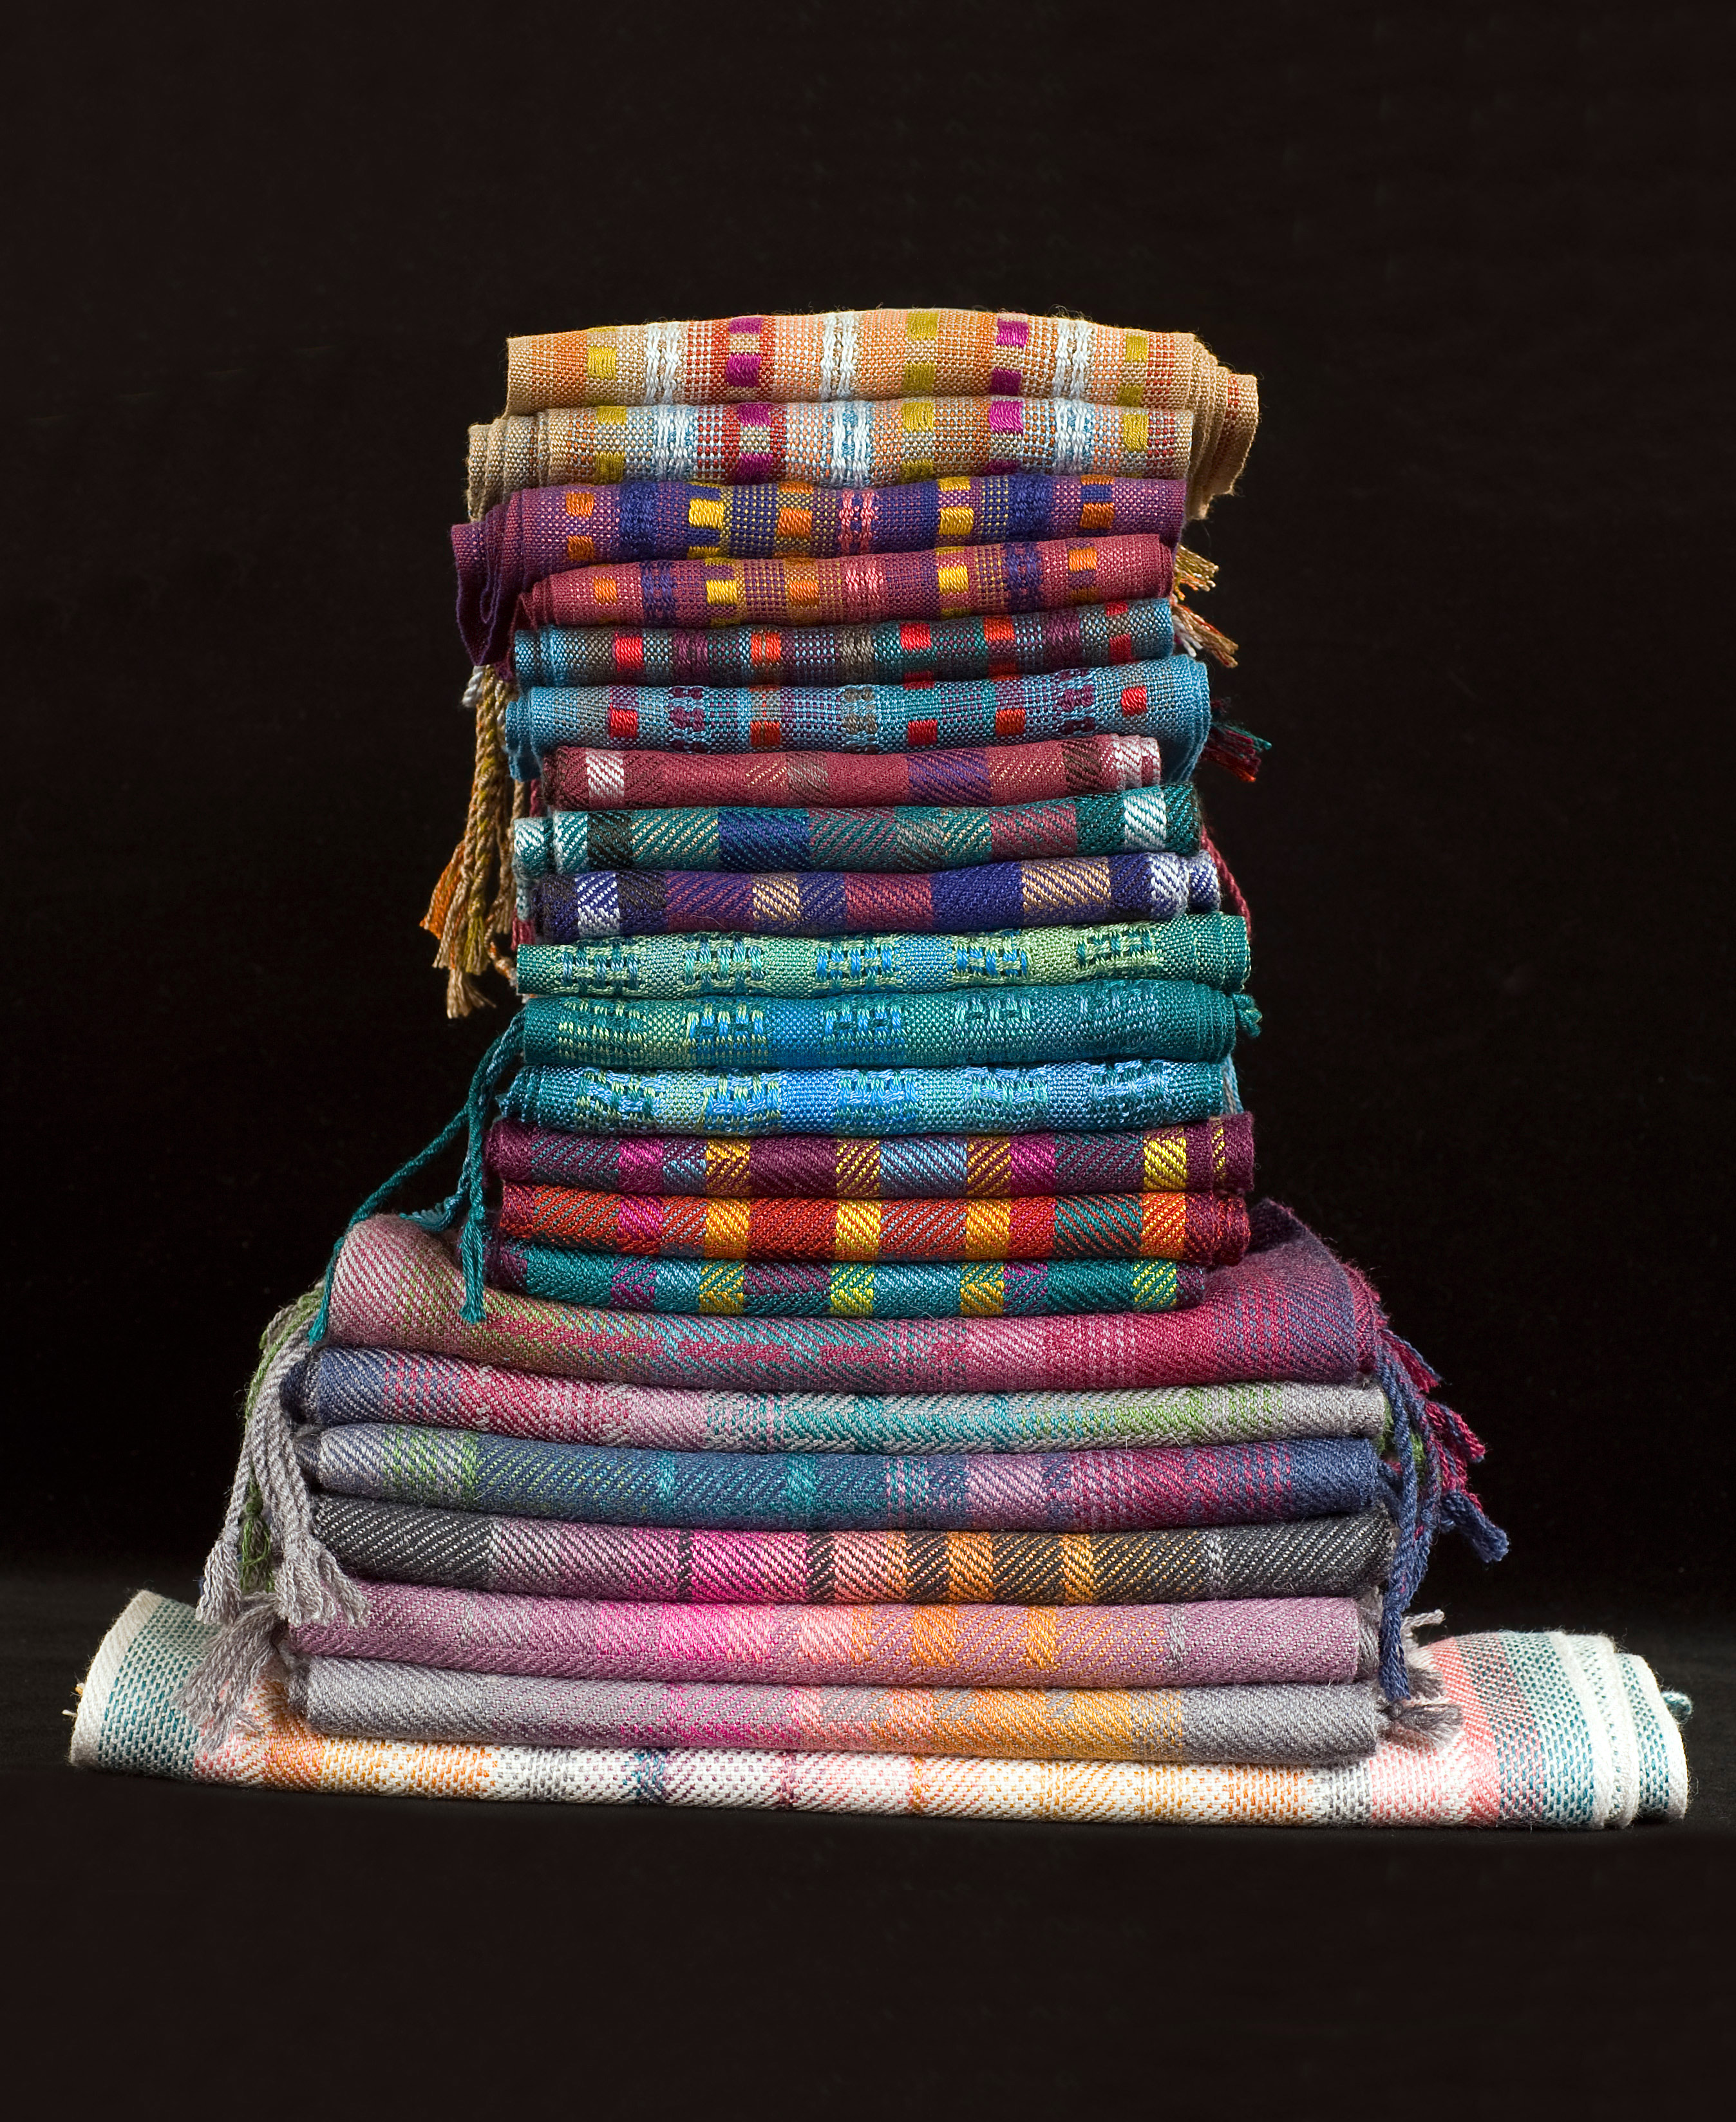 Pile of Scarves - Photo by Jody Brewer